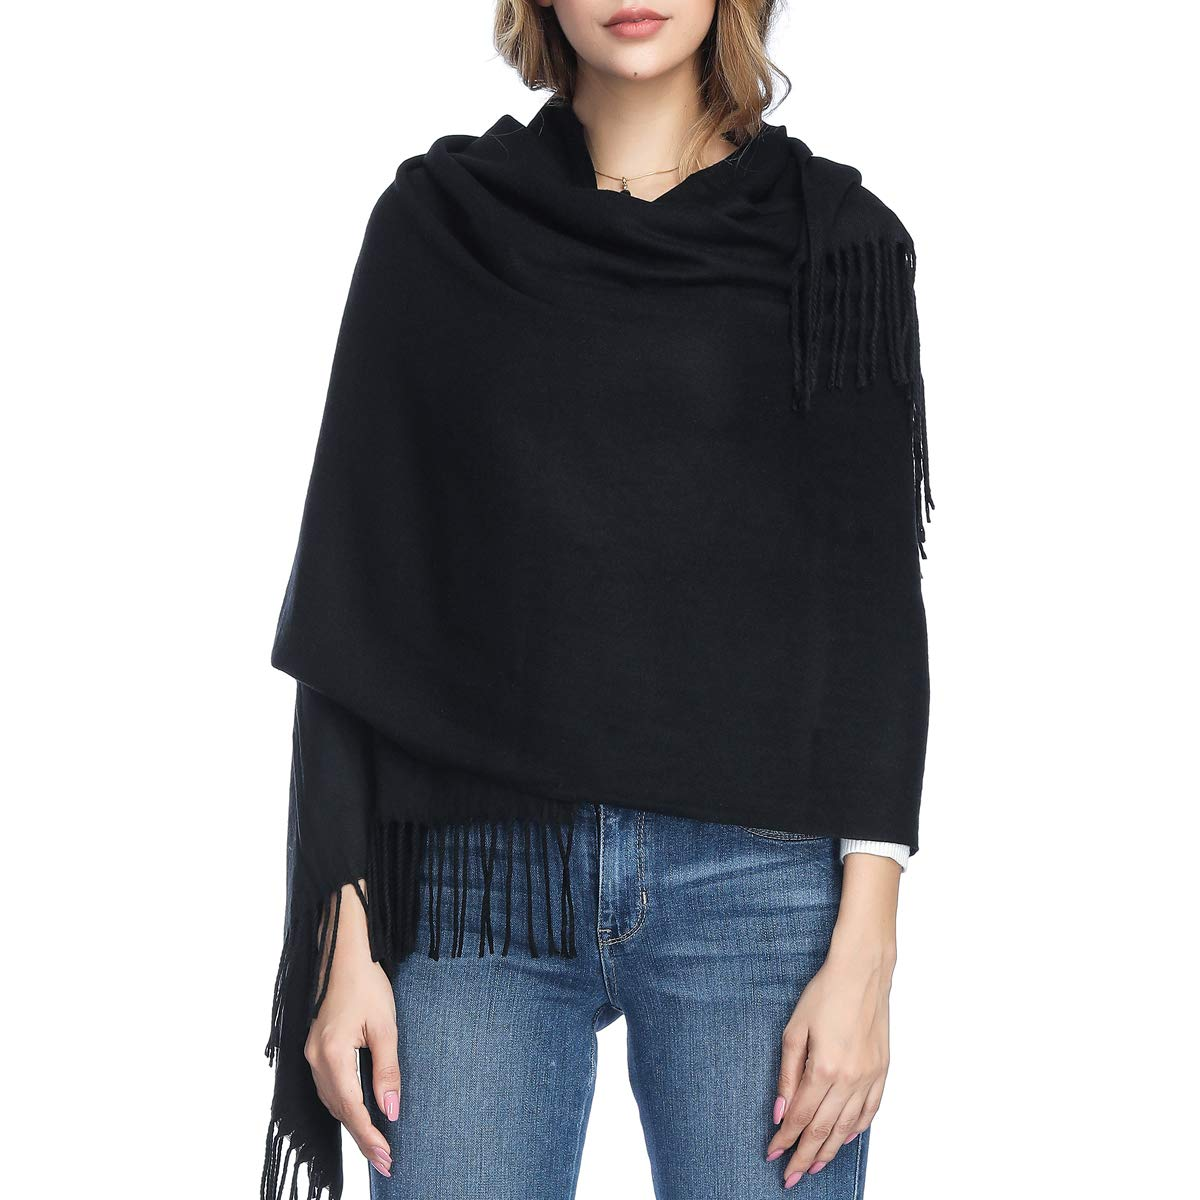 Victorian Capelet, Cape, Cloak, Shawl, Muff Extra Large Thick Soft Cashmere Wool Shawl Wraps for Women - PoilTreeWing Pashmina Scarf $31.99 AT vintagedancer.com